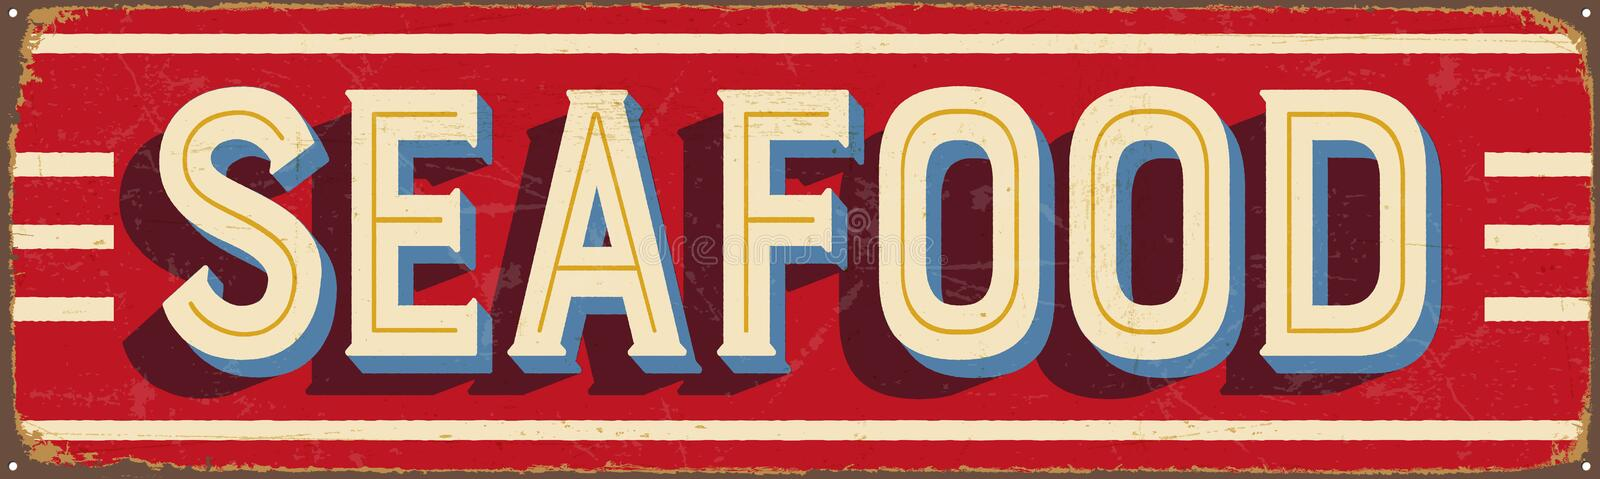 Vintage metal sign - Seafood. Vector EPS10. Grunge and rusty effects can be easily removed for a cleaner look vector illustration